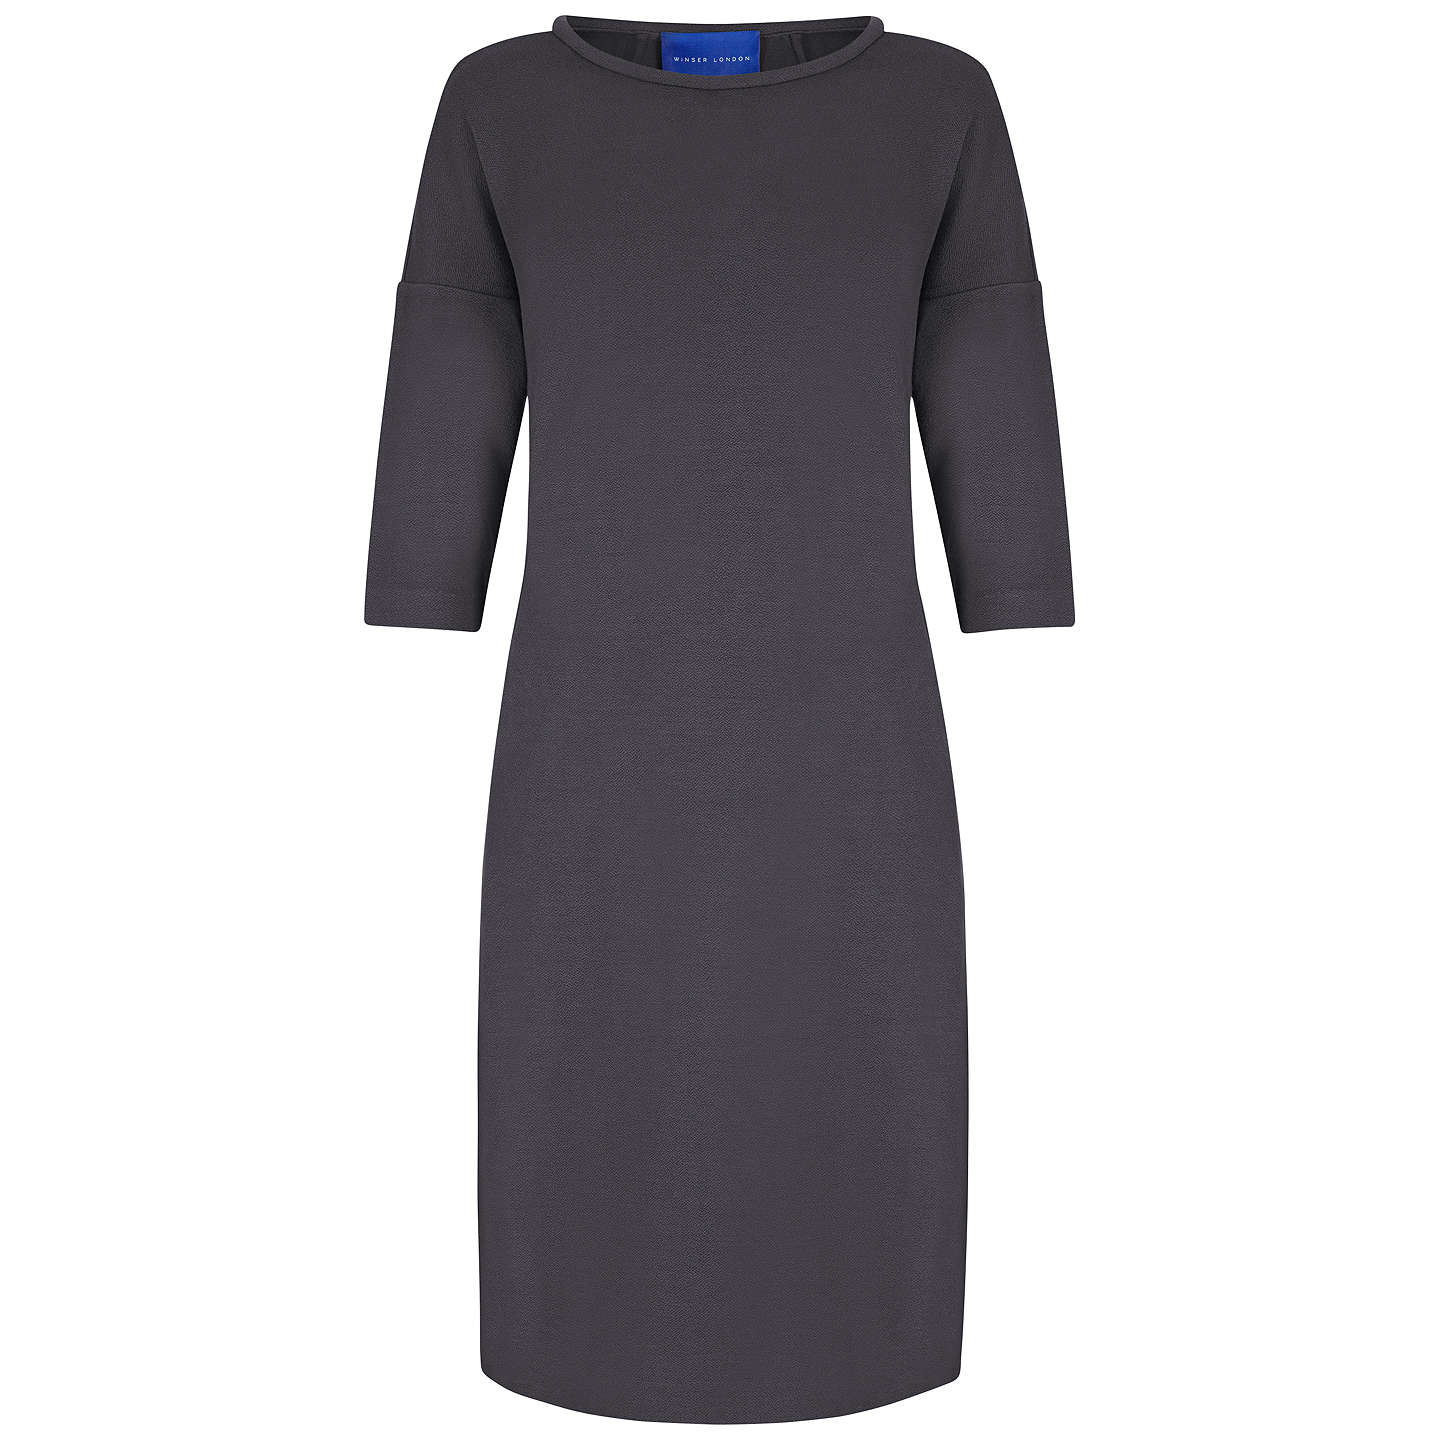 BuyWinser London Crepe Three Quarter Sleeve Shift Dress, Dark Grey, XS Online at johnlewis.com